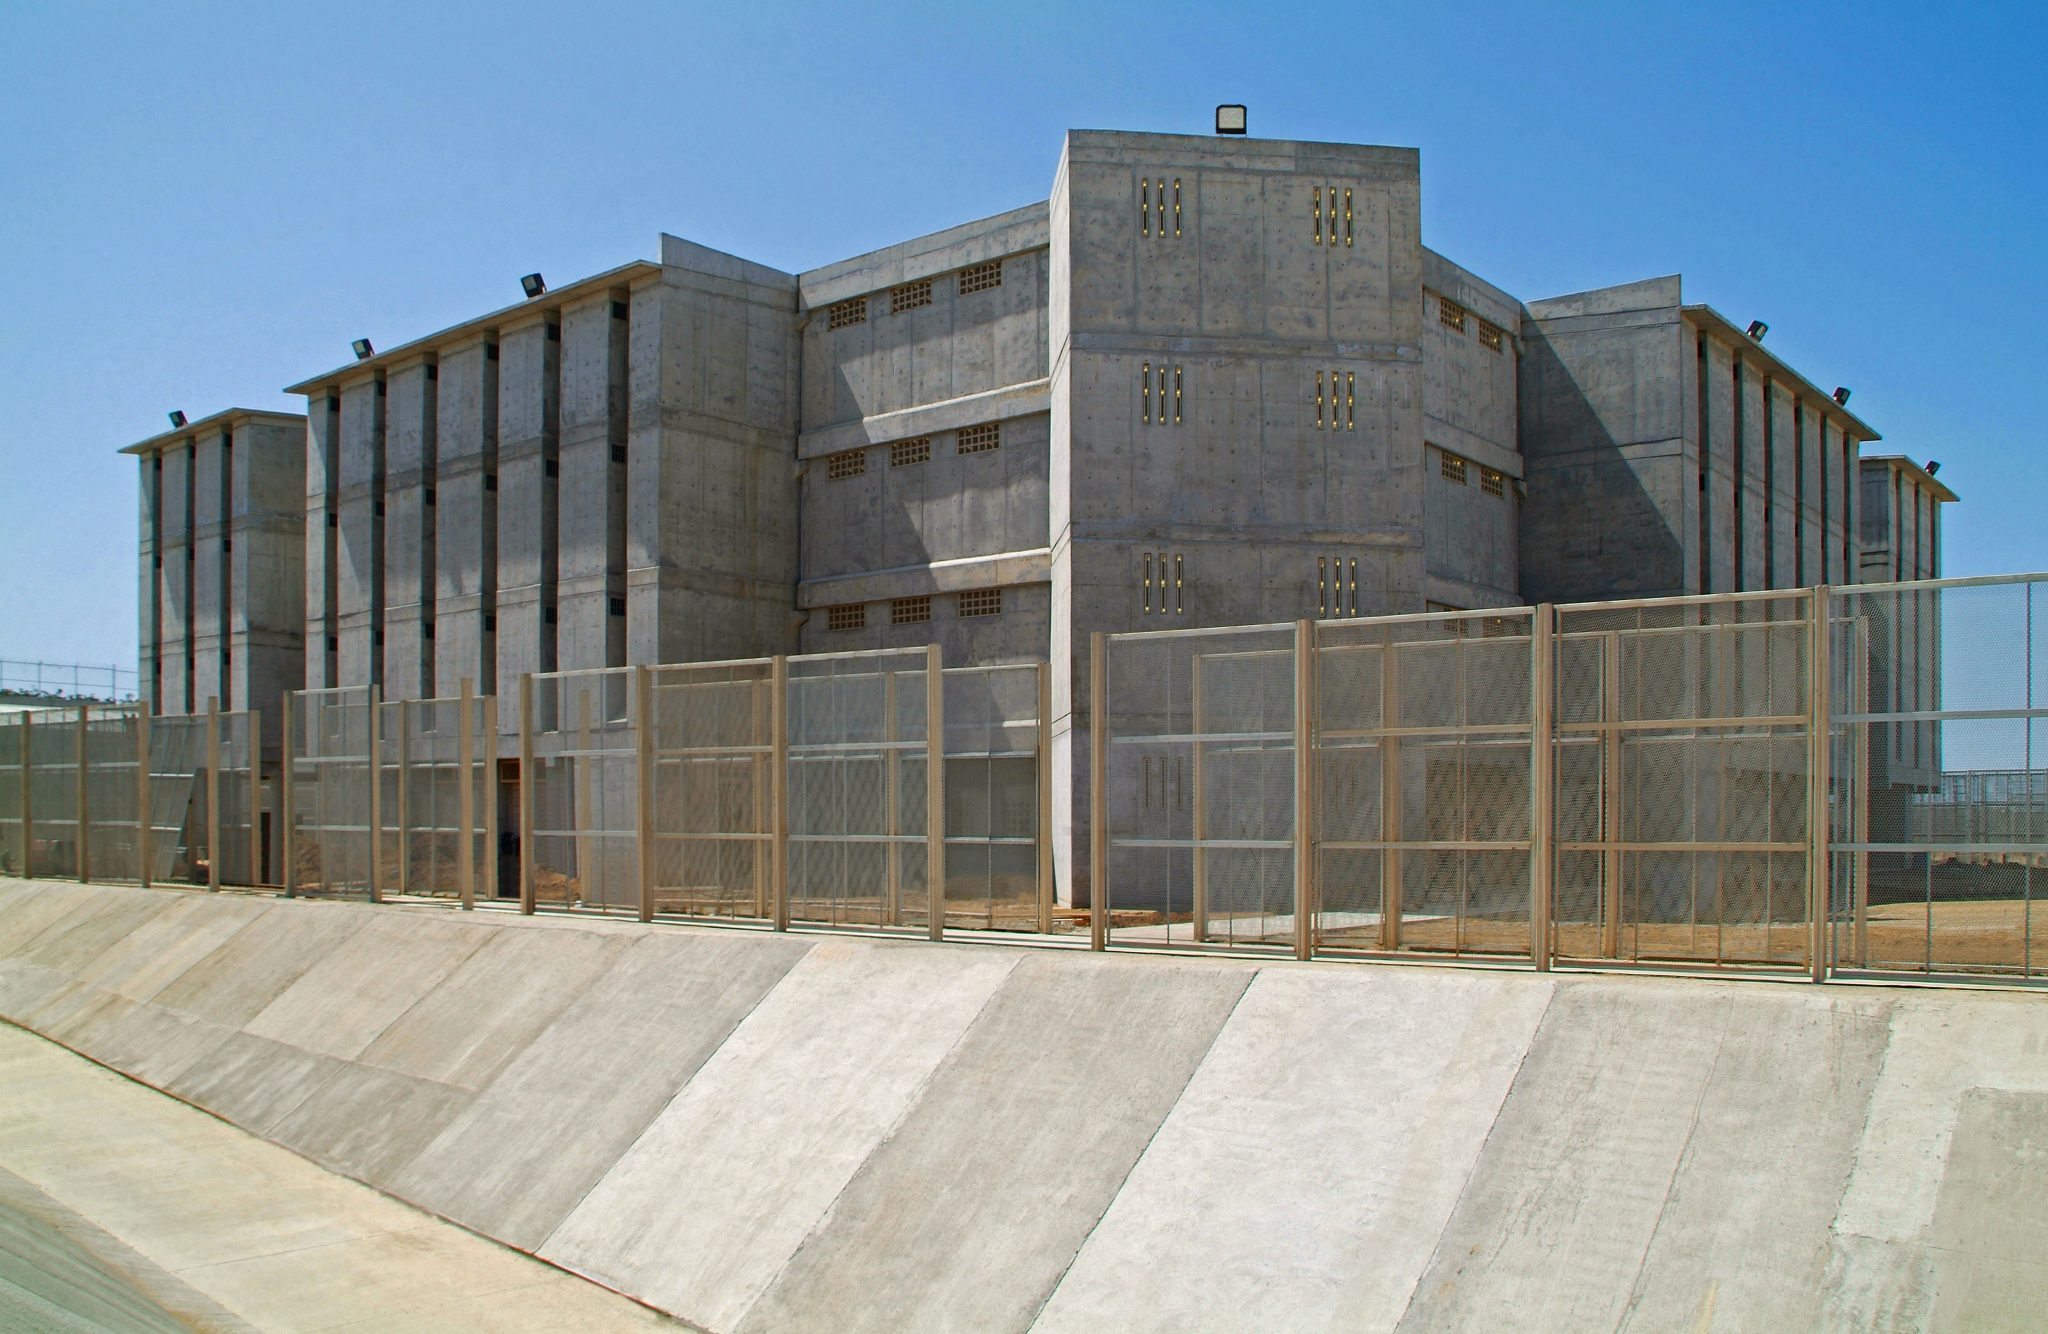 State penitentiary Cereso facility in Mexicali, Baja California.